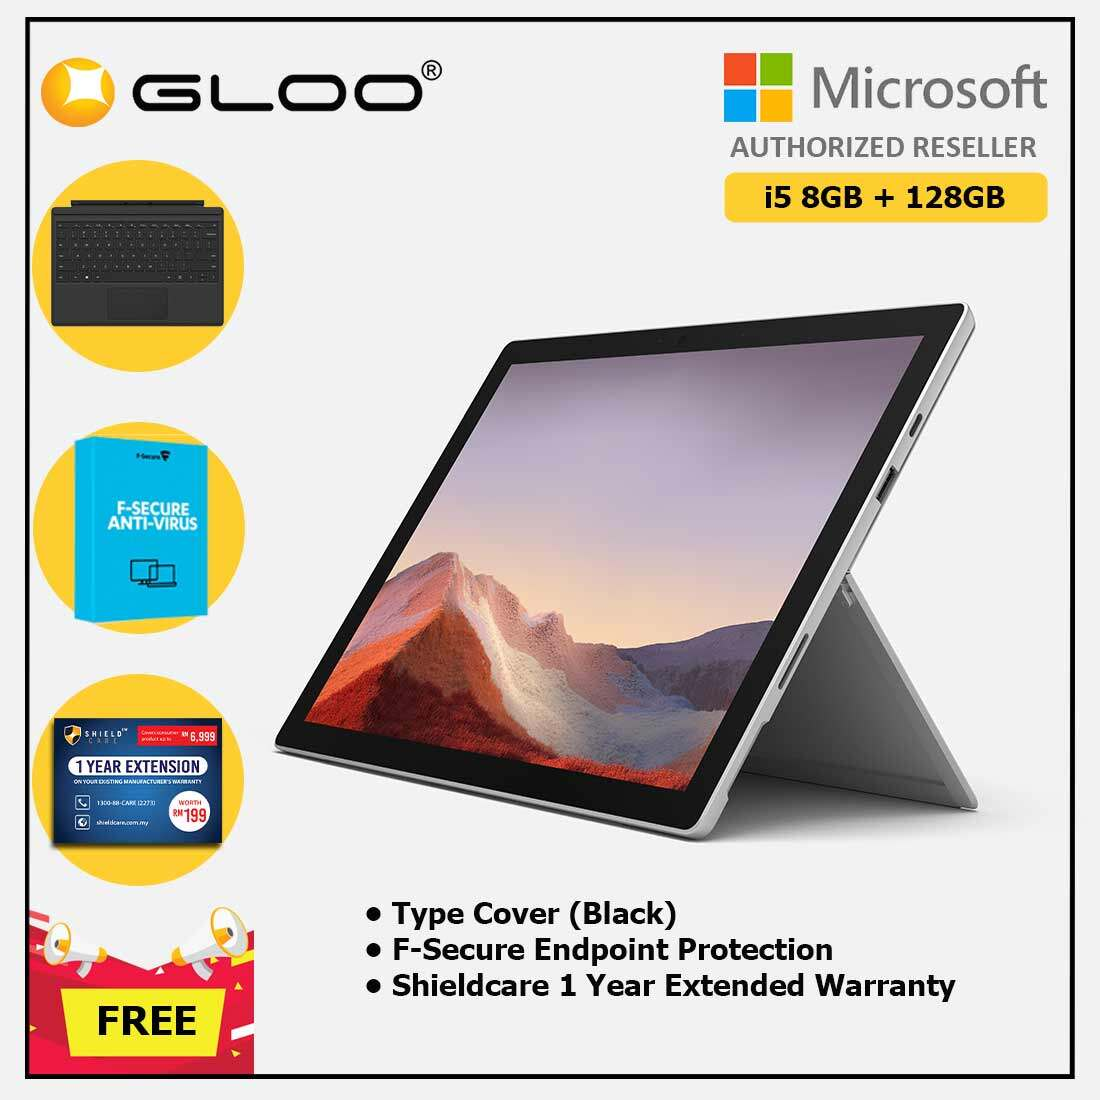 Microsoft Surface Pro 7 Core i5/8G RAM - 128GB Platinum - VDV-00012 + Surface Pro Type Cover Black + Shield Care 1 Year + F-Secure 1 Year[FOC RM100 Aeon Voucher 21/3/2020 - 31/3/2020 While Stock Last] Malaysia